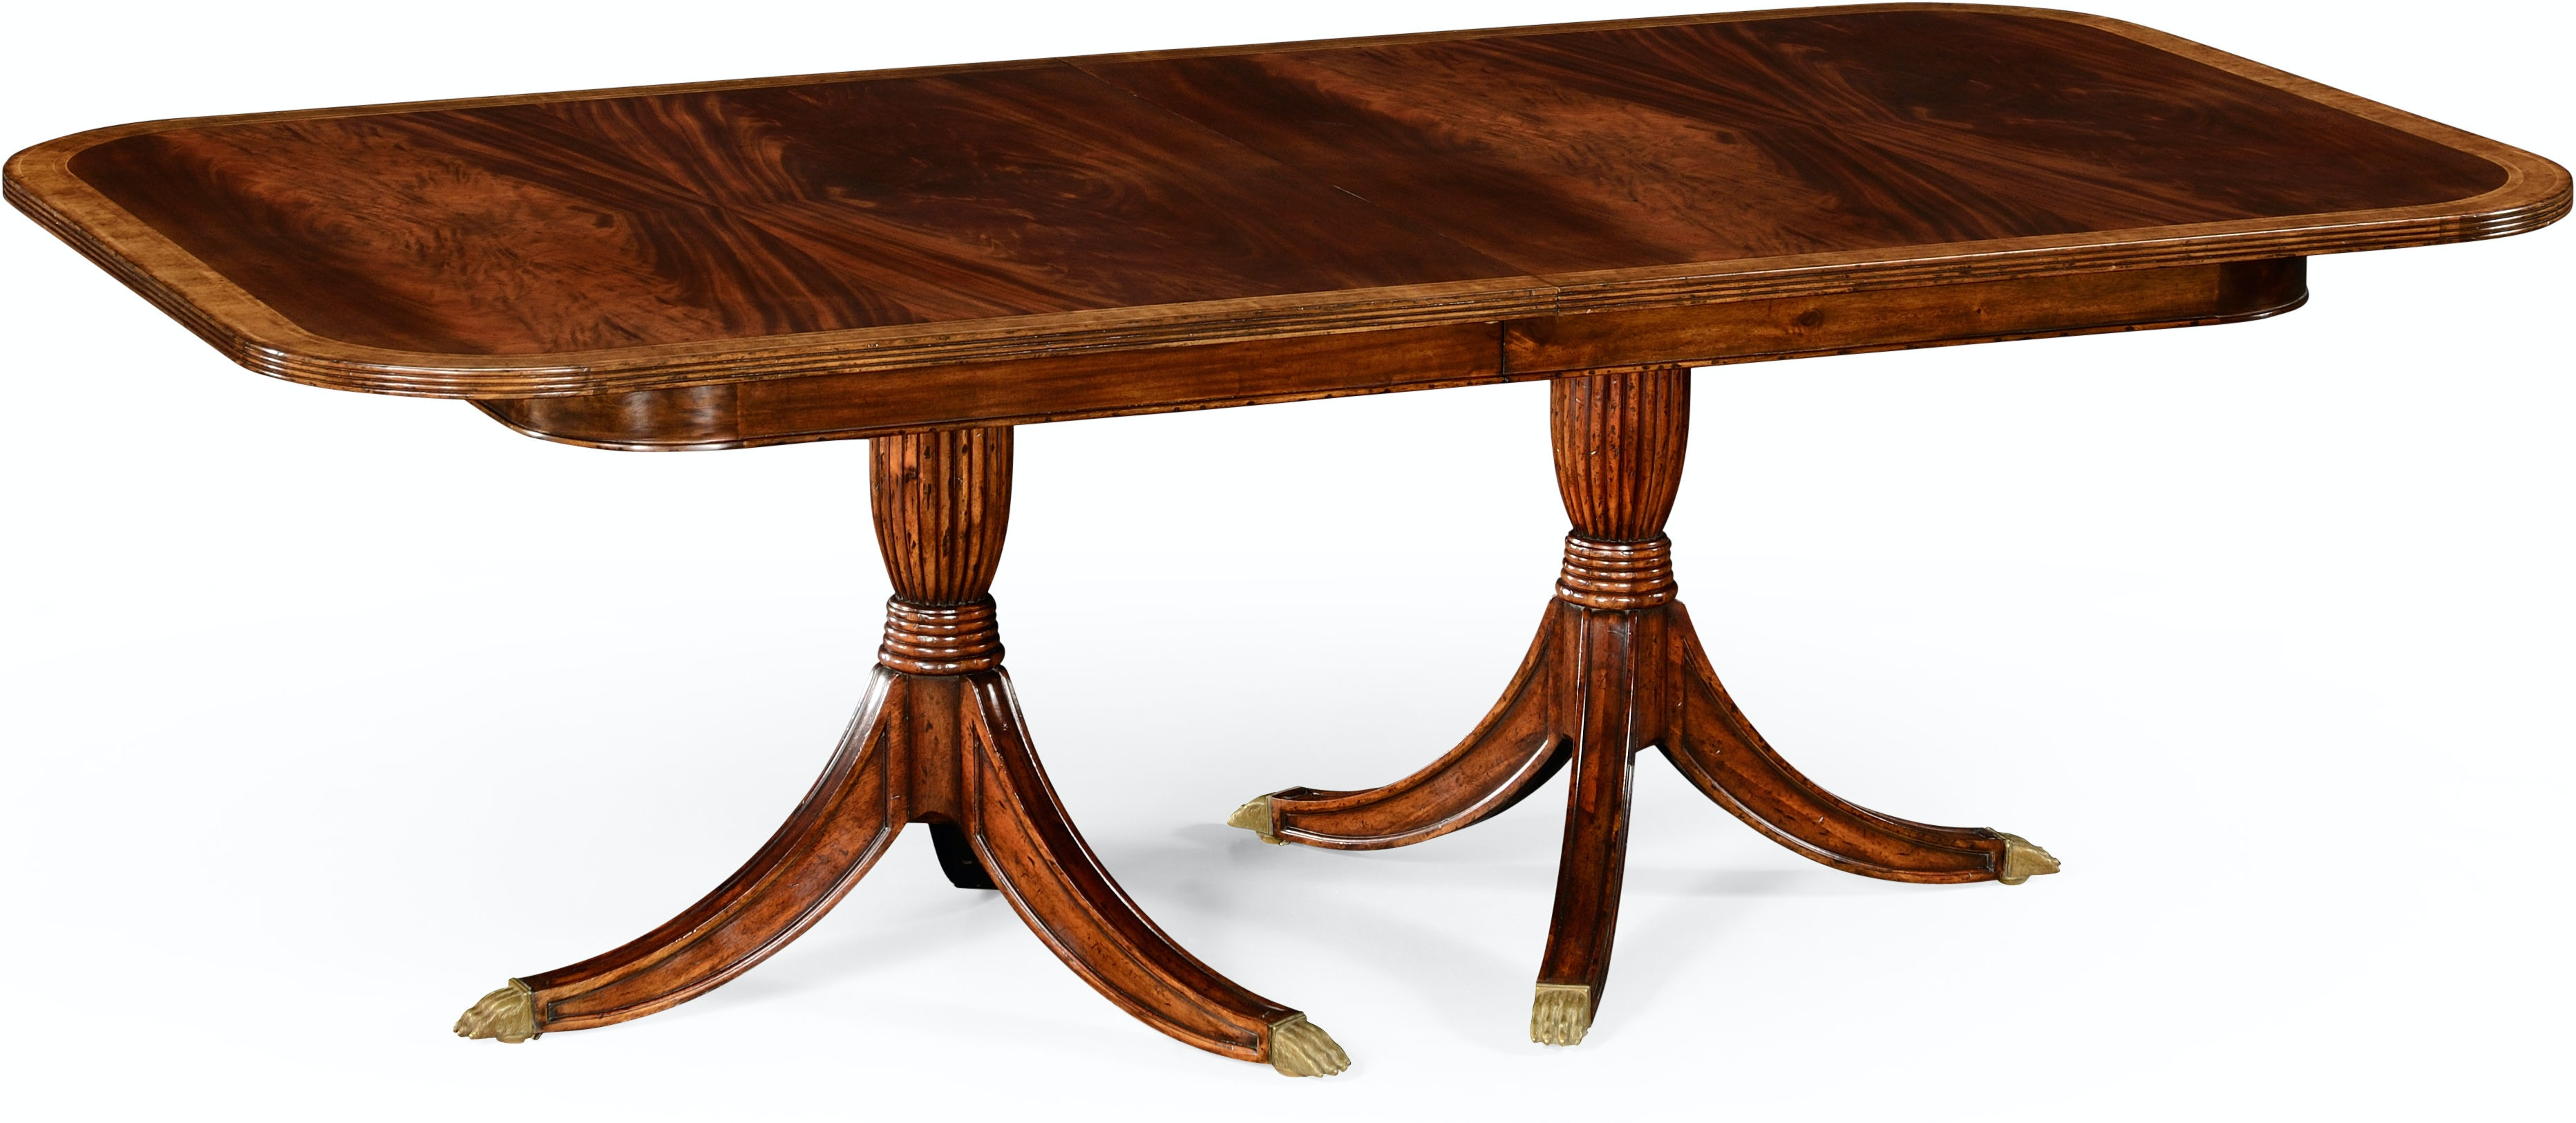 Regency Two Leaf Mahogany Extending Dining Table